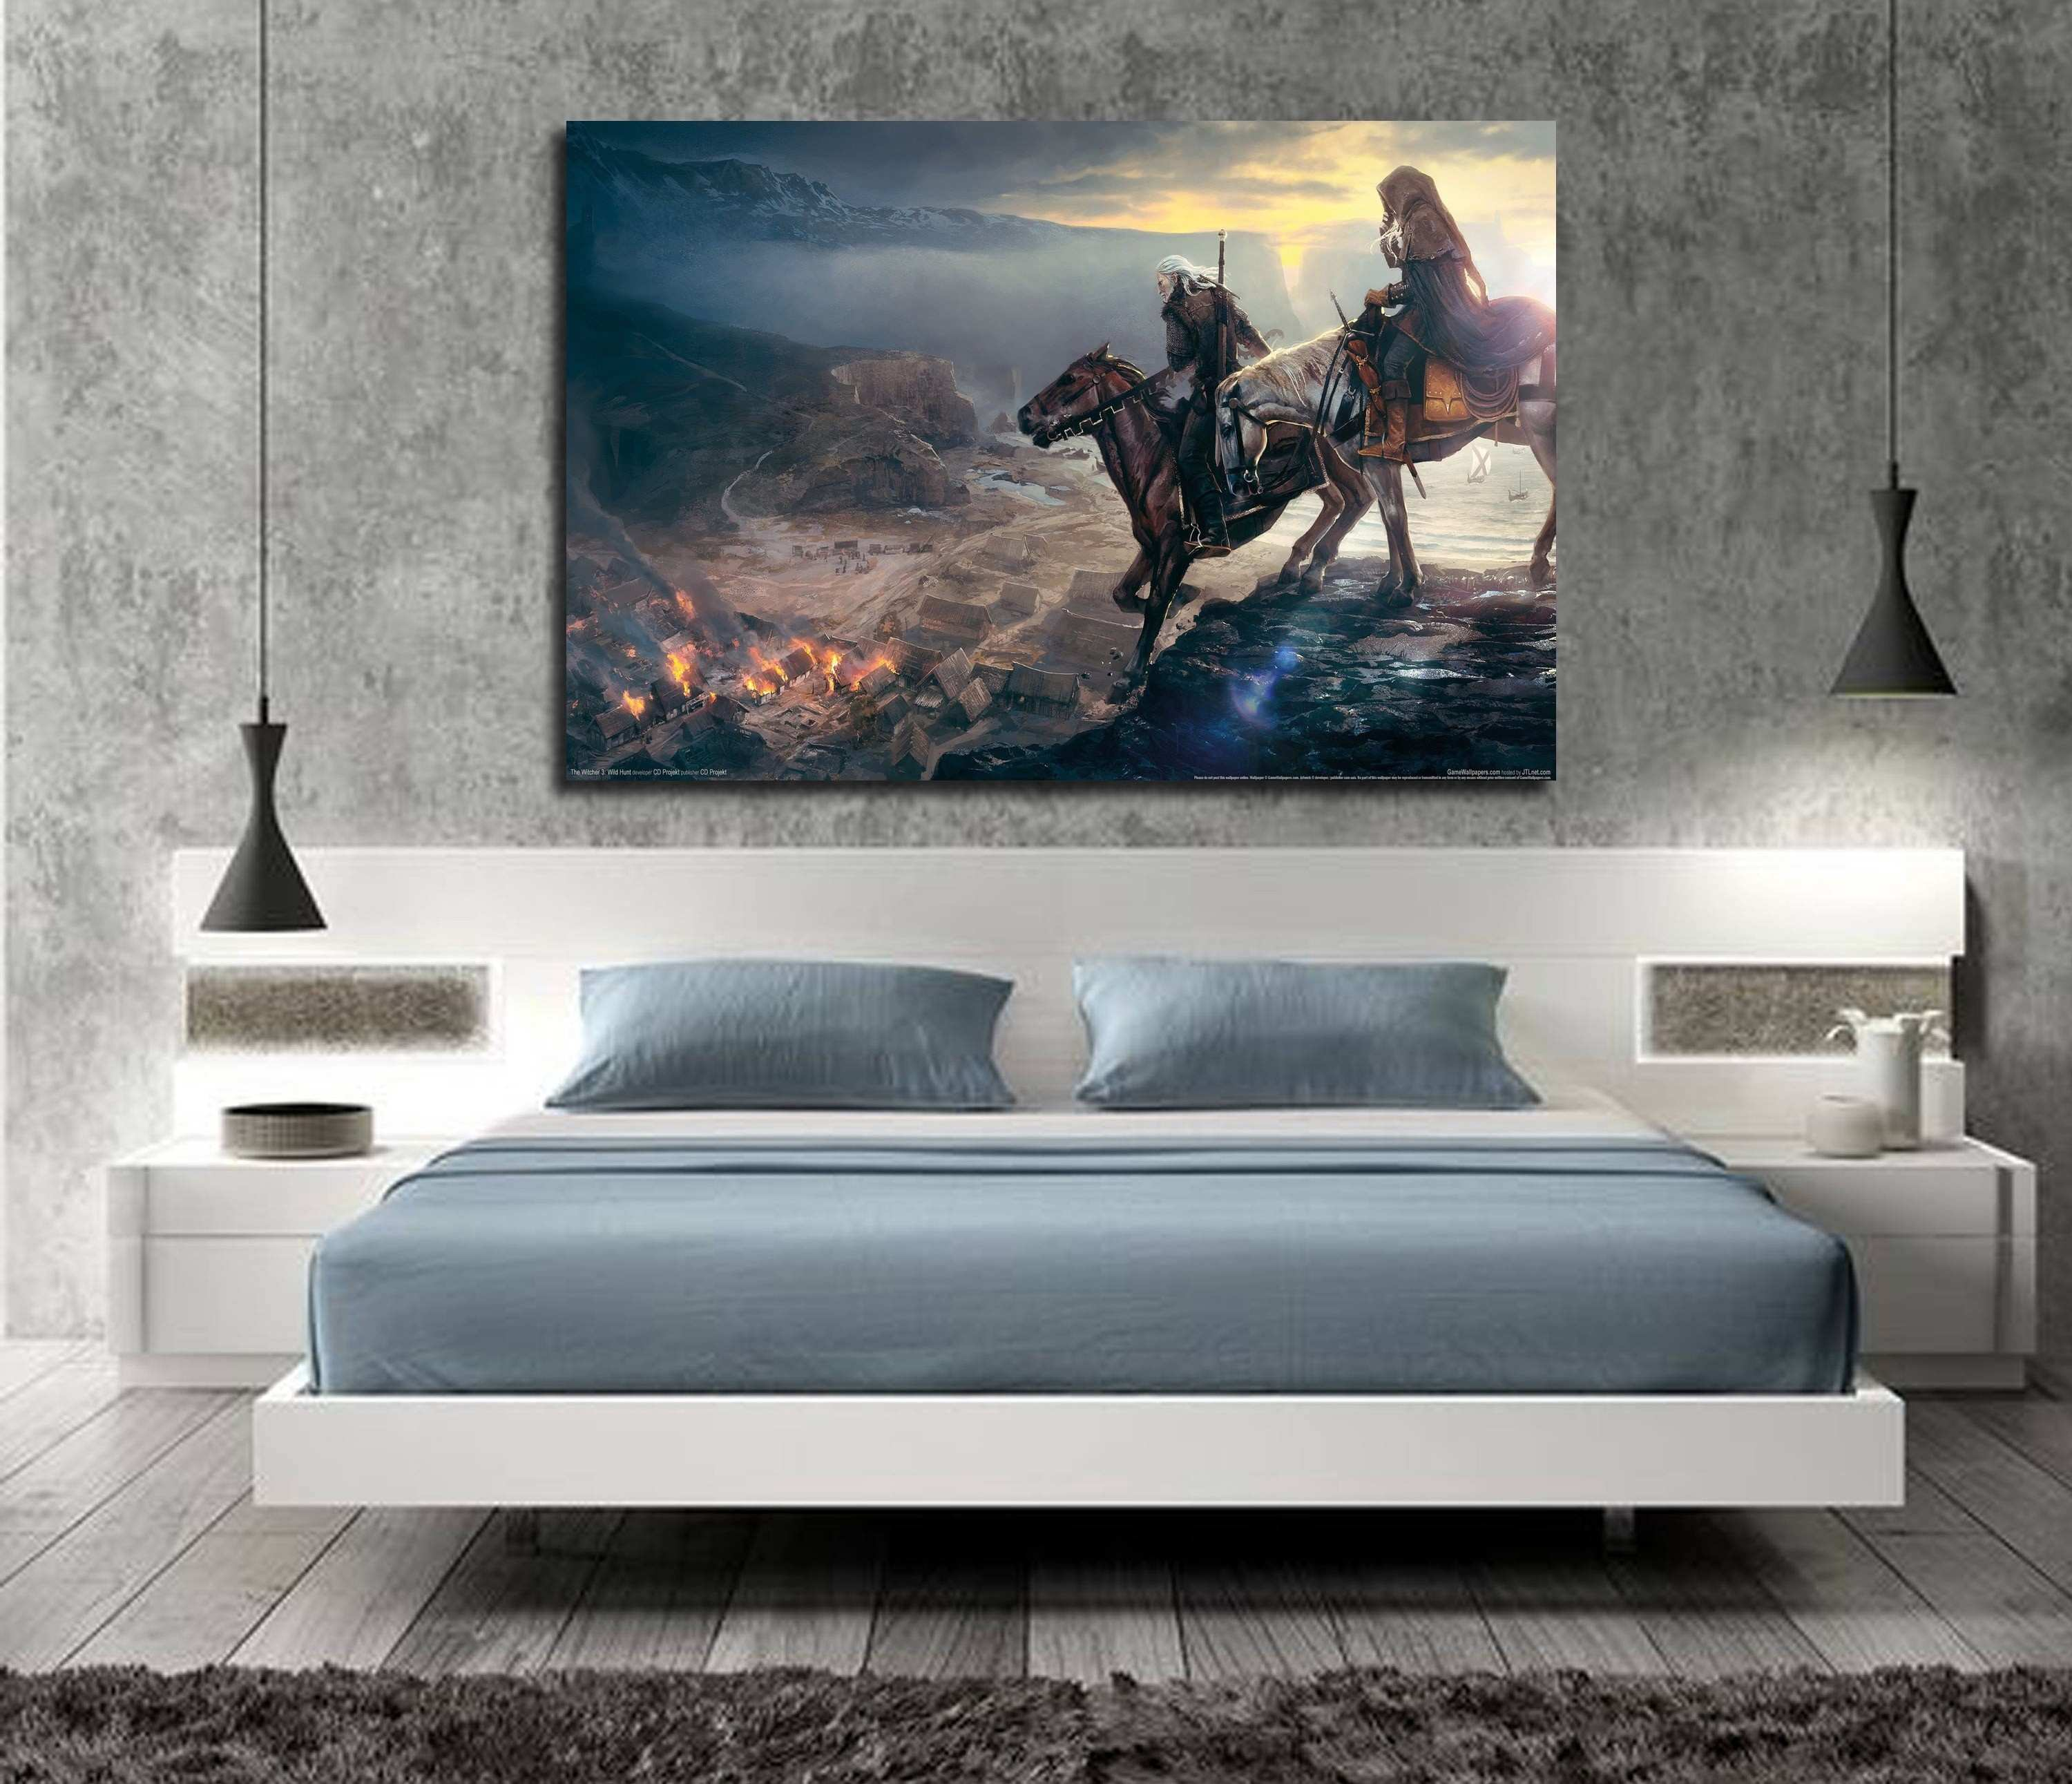 Geralt The Witcher 3 Wild Hunt Hot Game Art Silk Fabric Poster Print